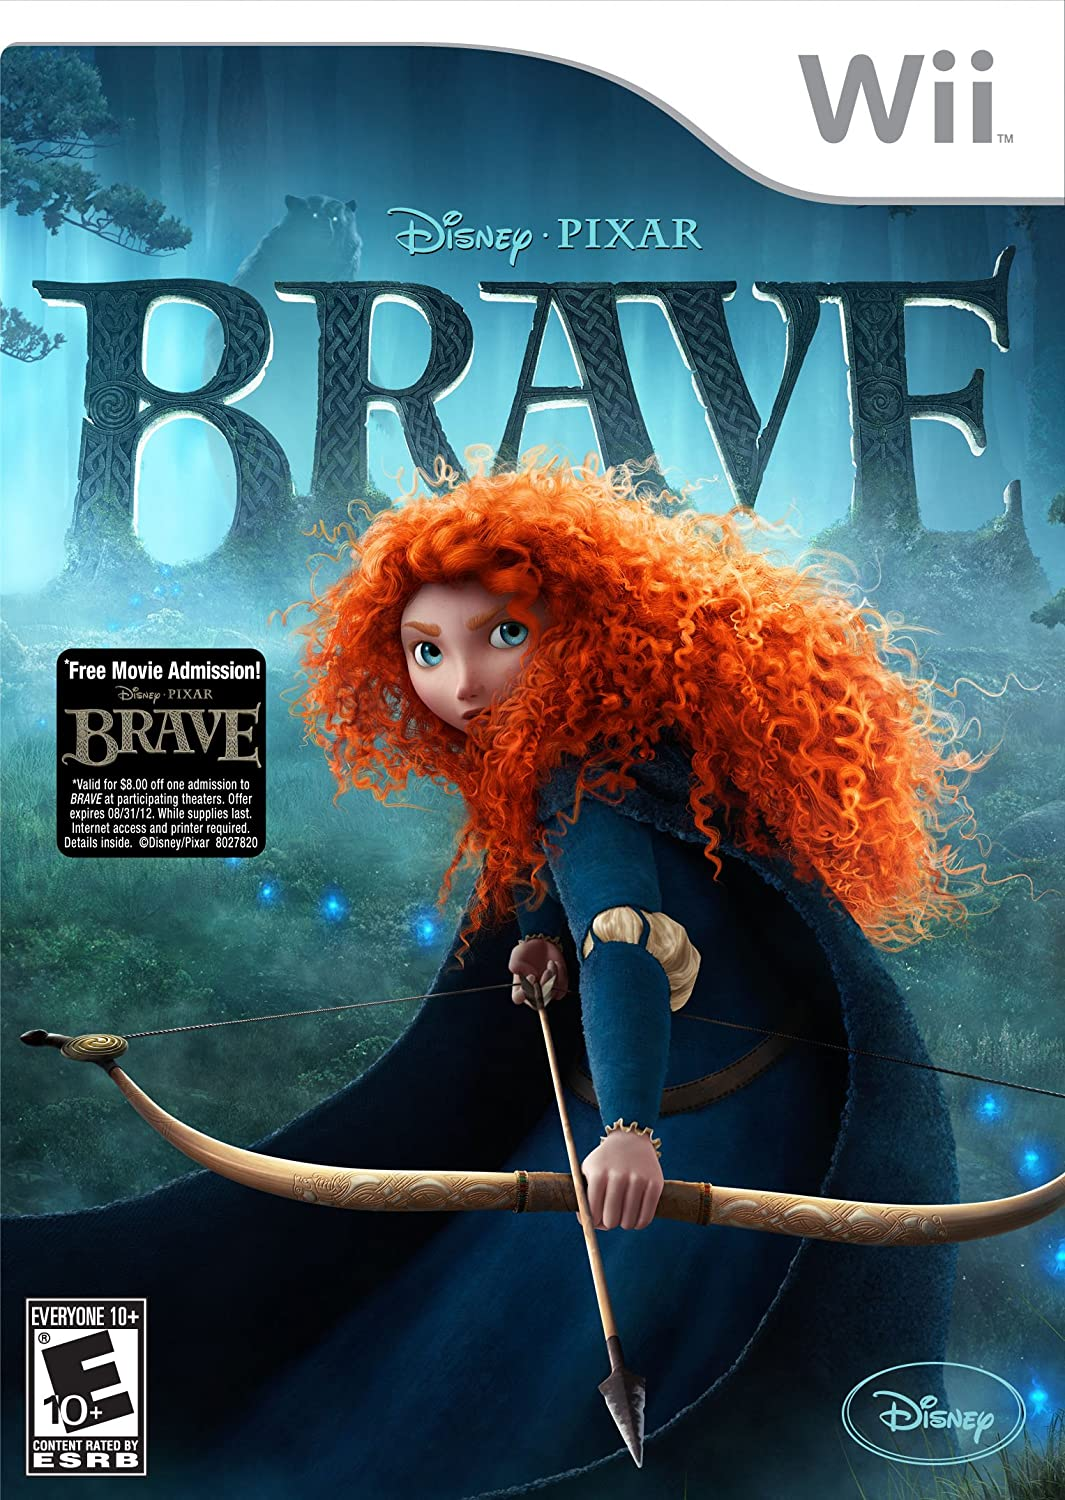 Amc theaters brave sweepstakes online